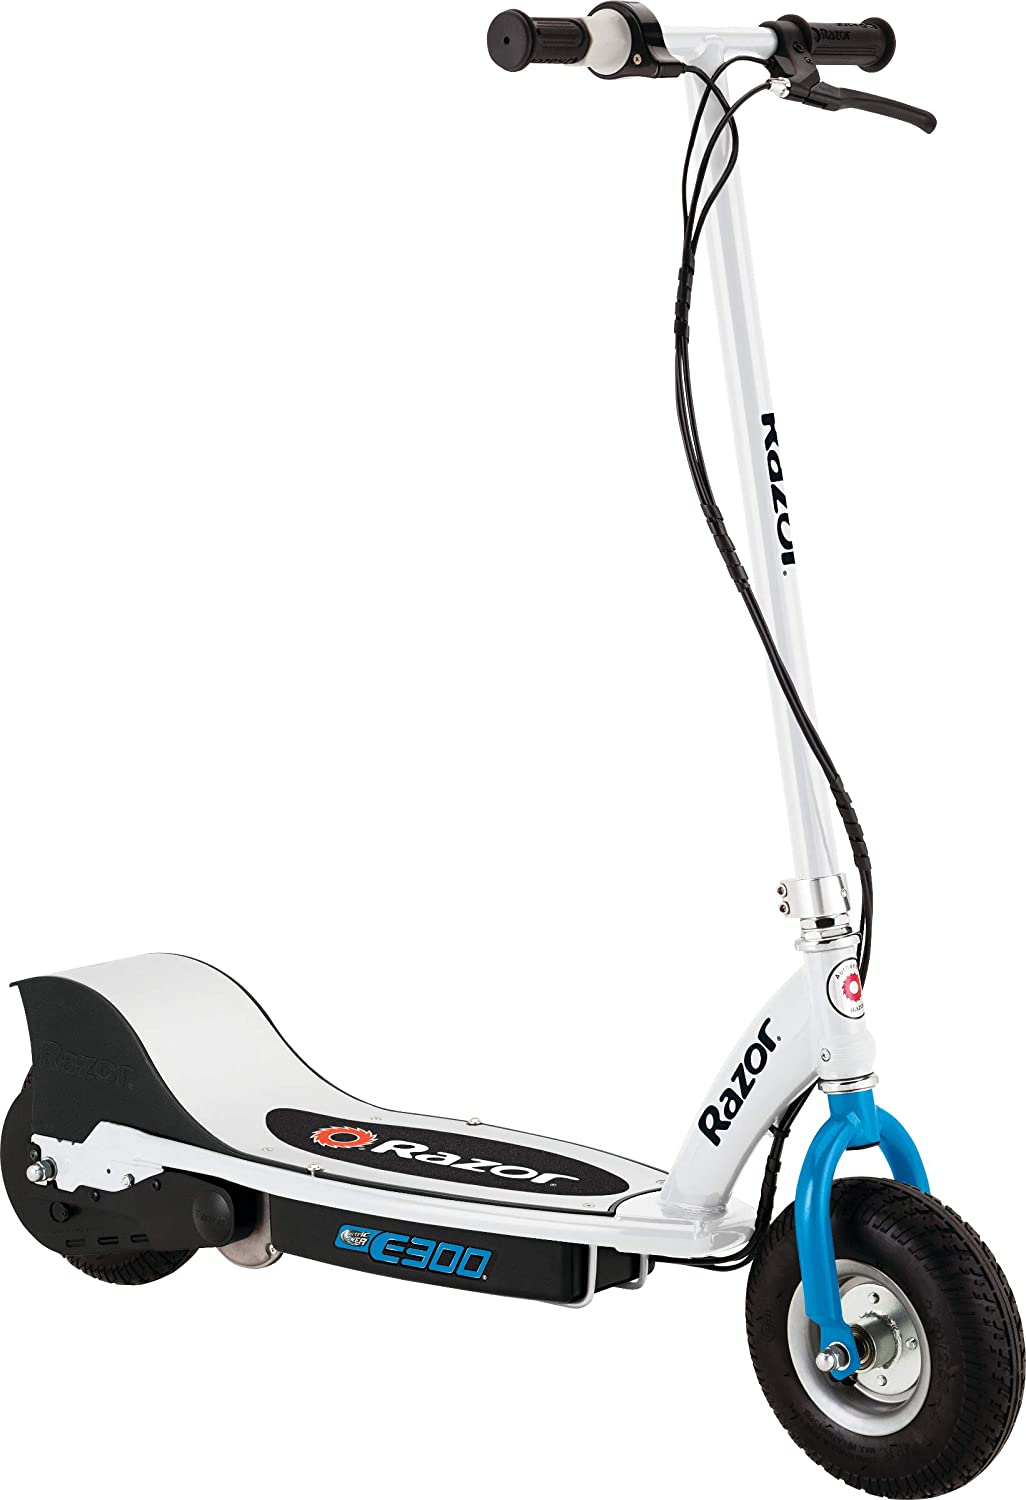 Razor E300 Electric Scooter 9 Air Filled Tires Up To 15 Mph And 10 Miles Range White Blue Sports Outdoors